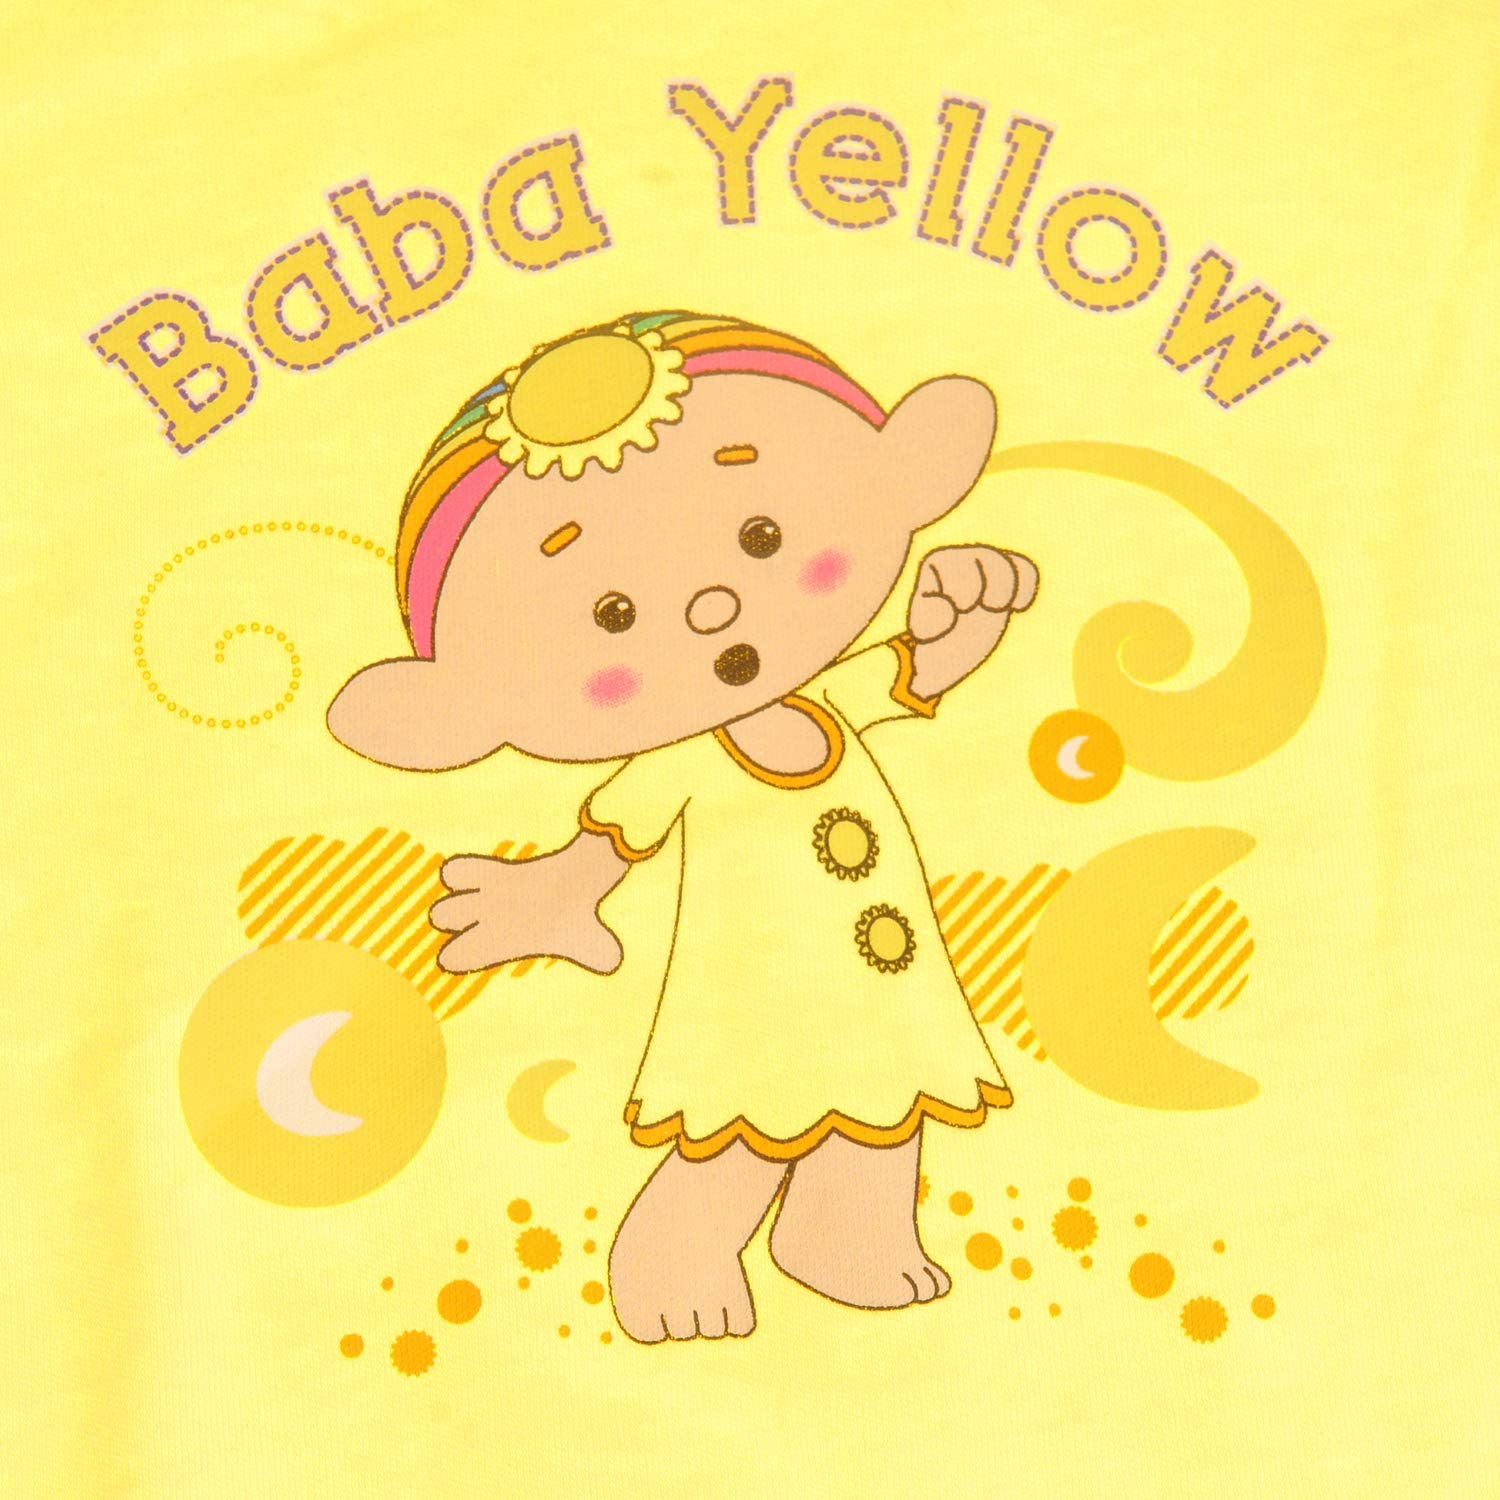 a26d4c66f8ca Cloudbabies PJs Yellow (6-12 Months)  Amazon.co.uk  Baby